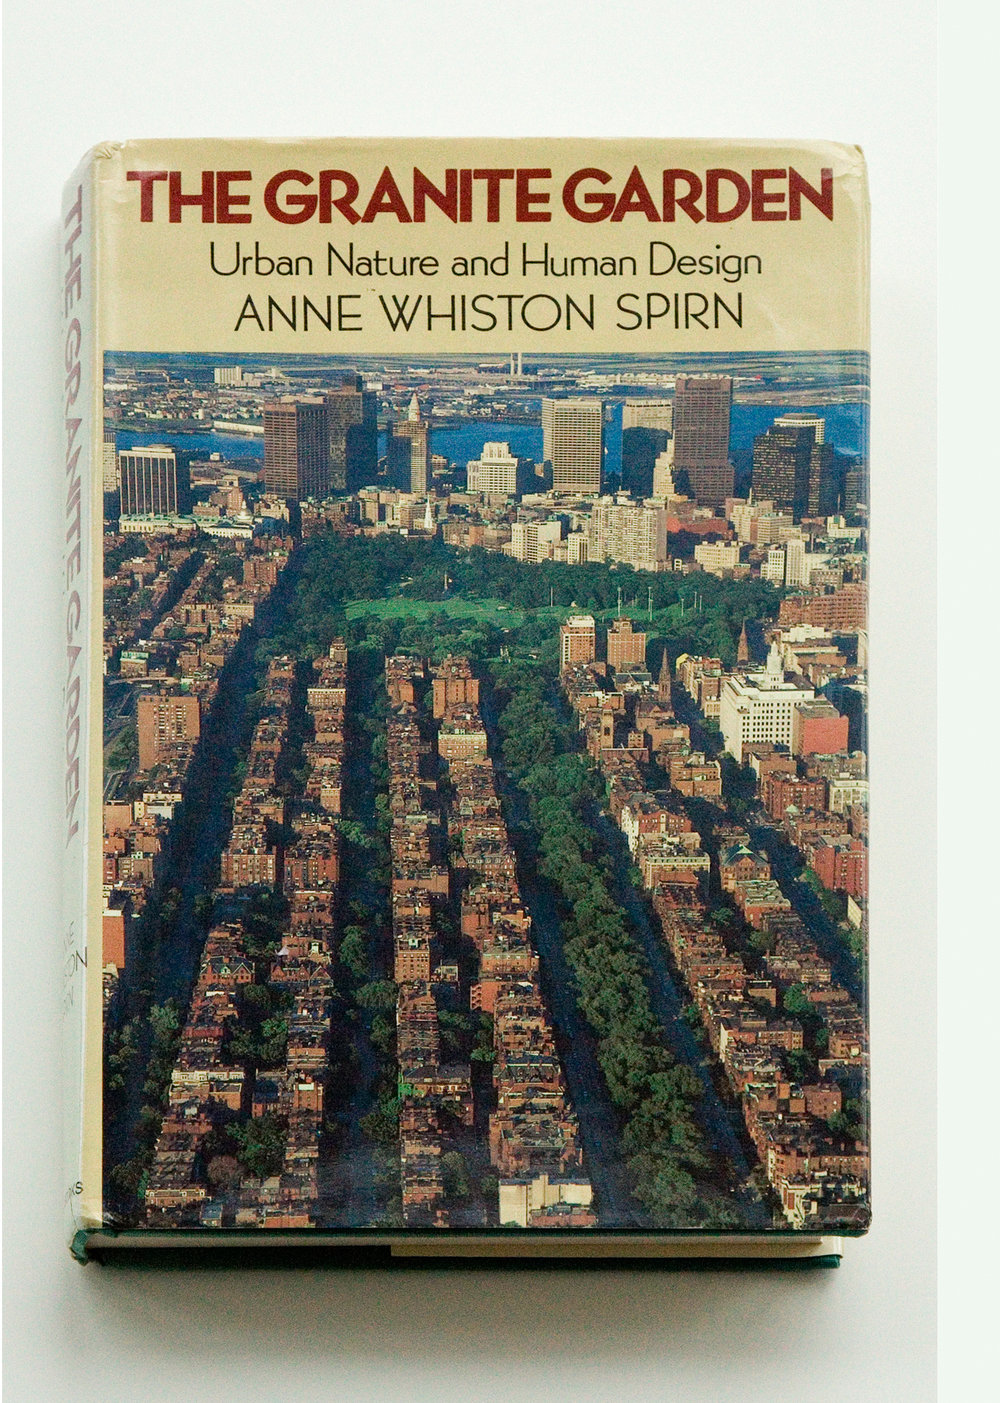 The Granite Garden was published in 1984. Photo credit: Anne Whiston Spirn.